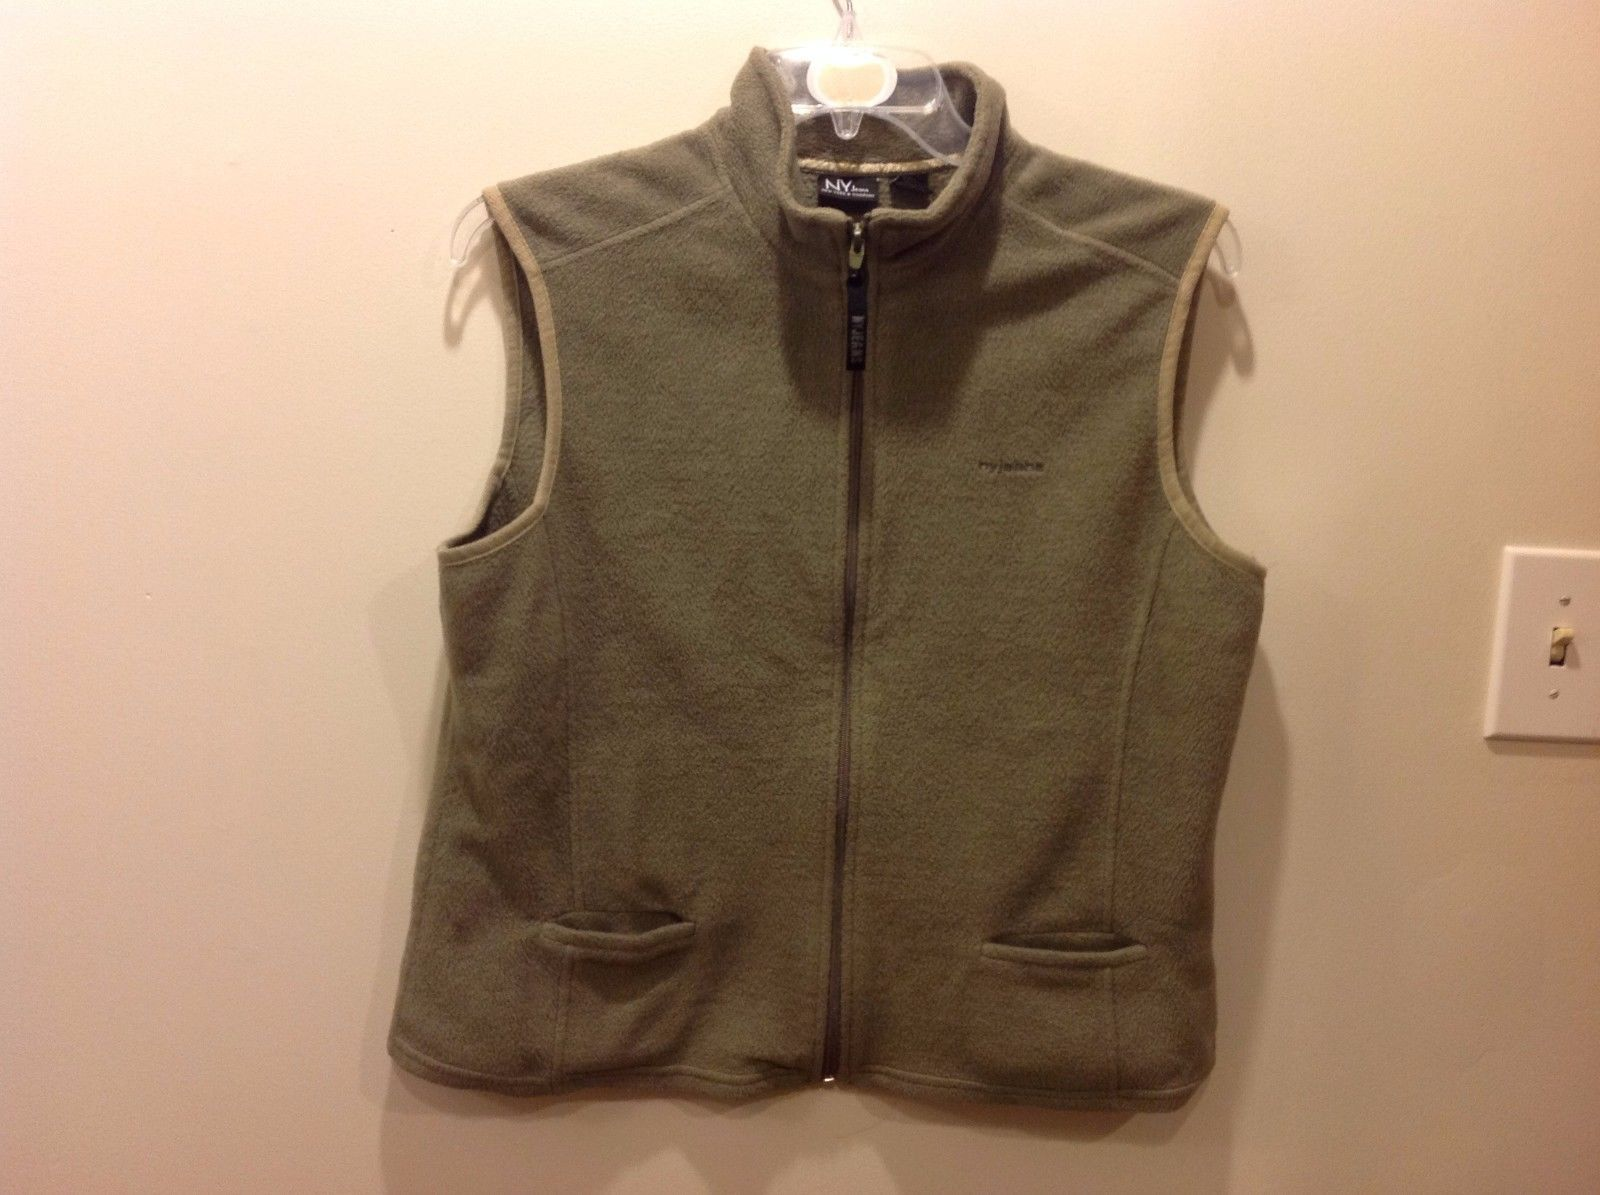 Soft Warm Jade Green Zip Up Collared Vest by New York & Co Sz XL